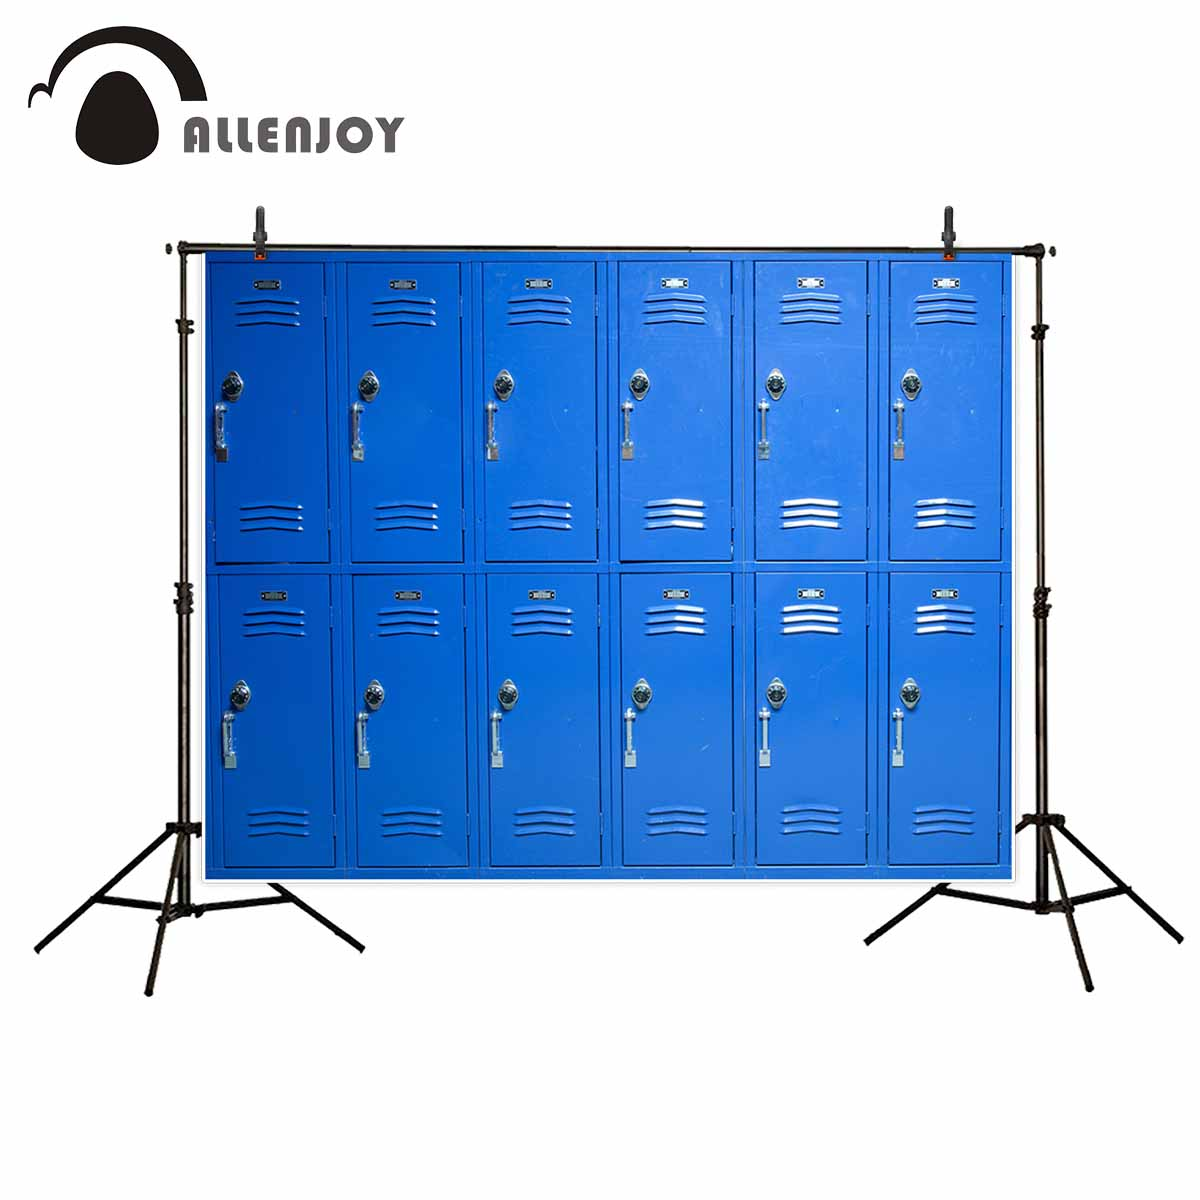 Allenjoy photography backdrops Blue lockers school backdrop photographic background photocall child photography allenjoy photography backdrops library bookshelf school student study room books photocall baby shower